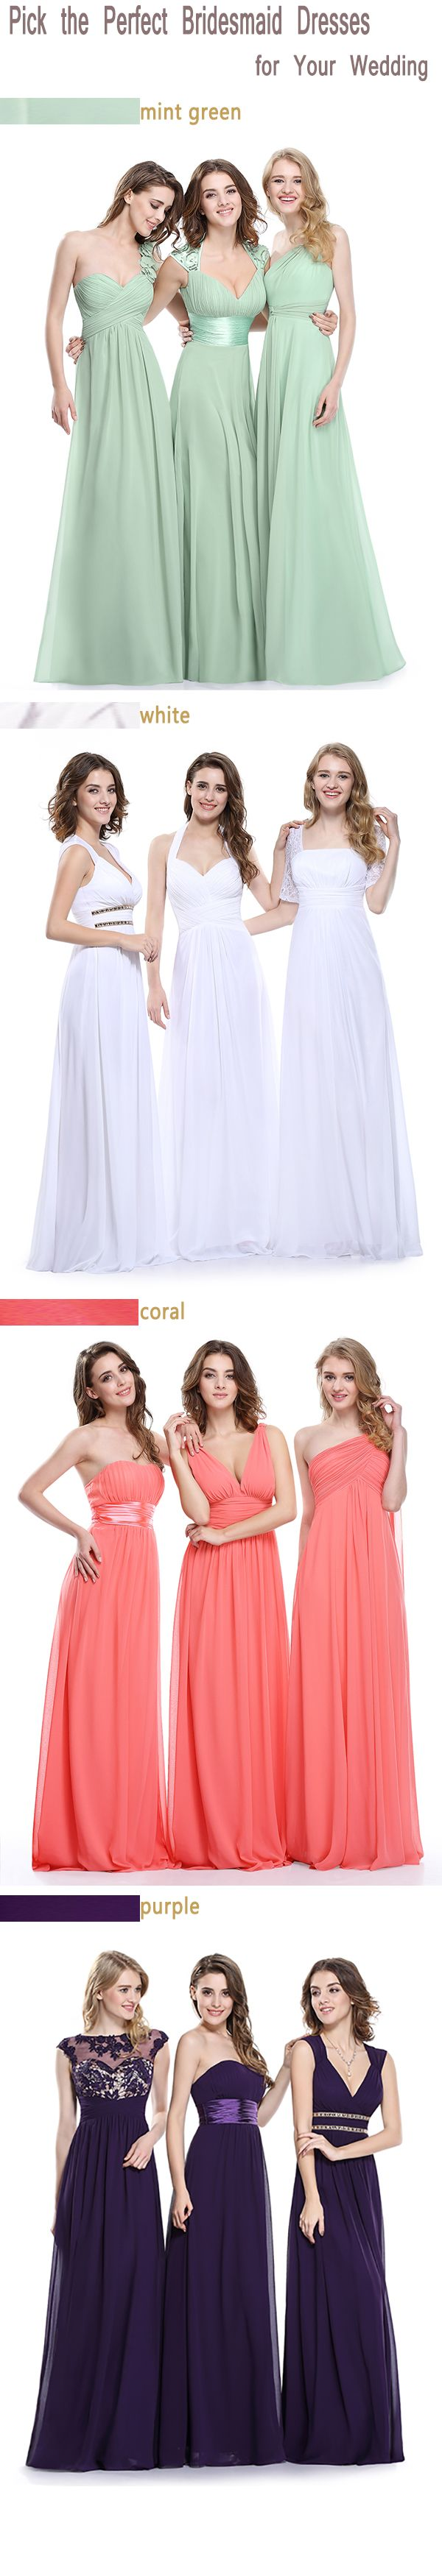 Pick the perfect bridesmaid dresses for your wedding. 2016 ...